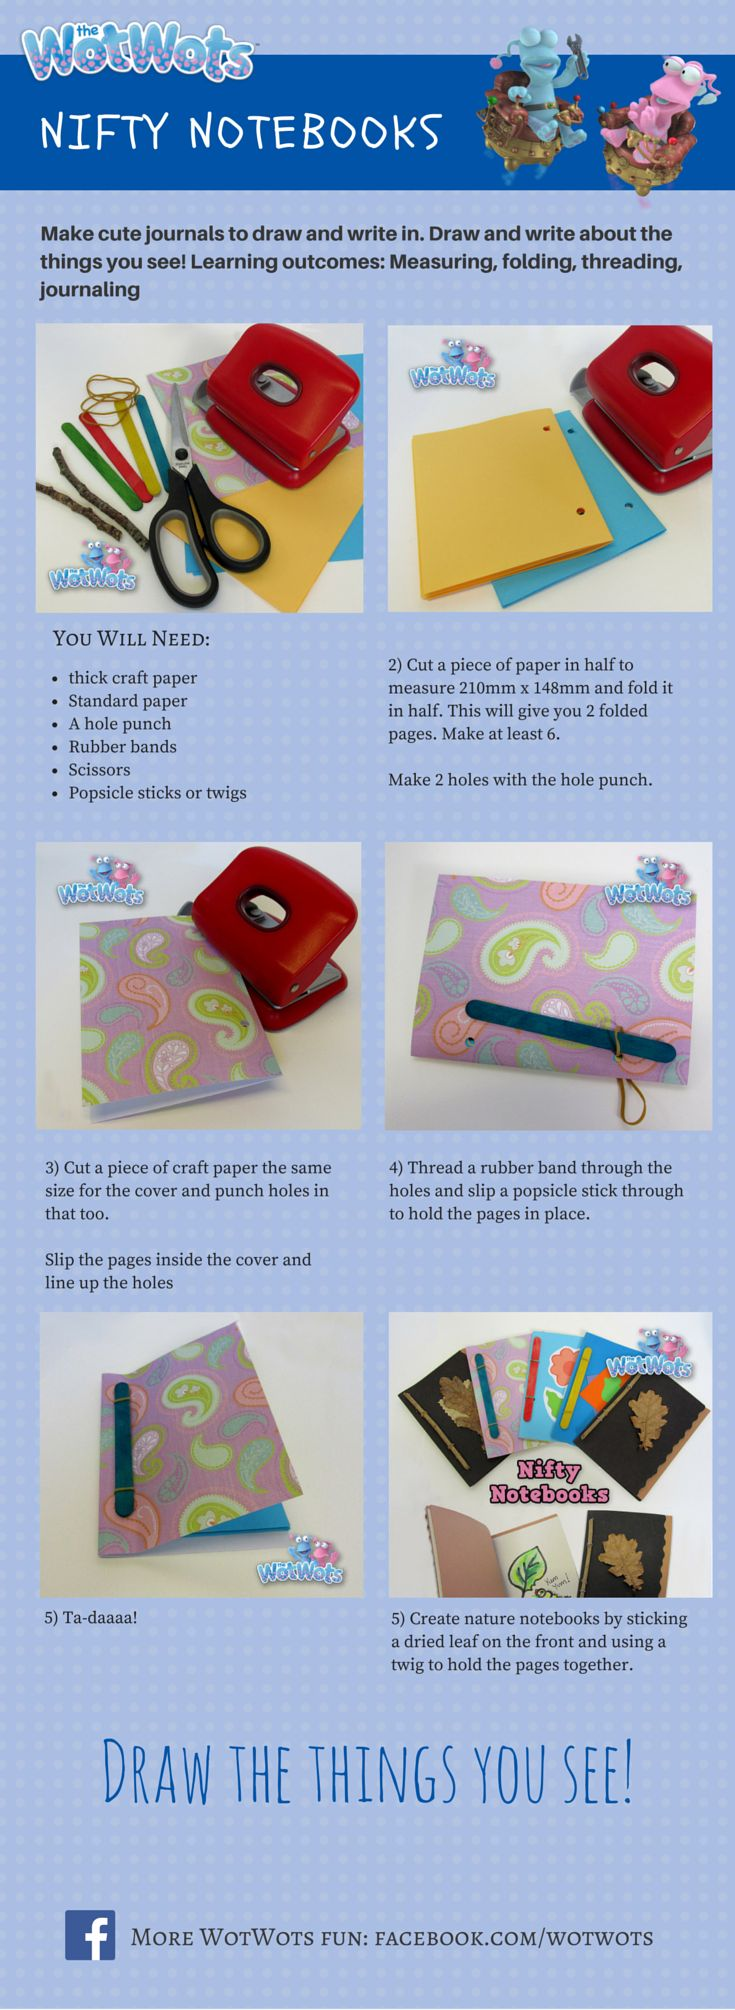 Nifty-Notebooks.png (735×2010)